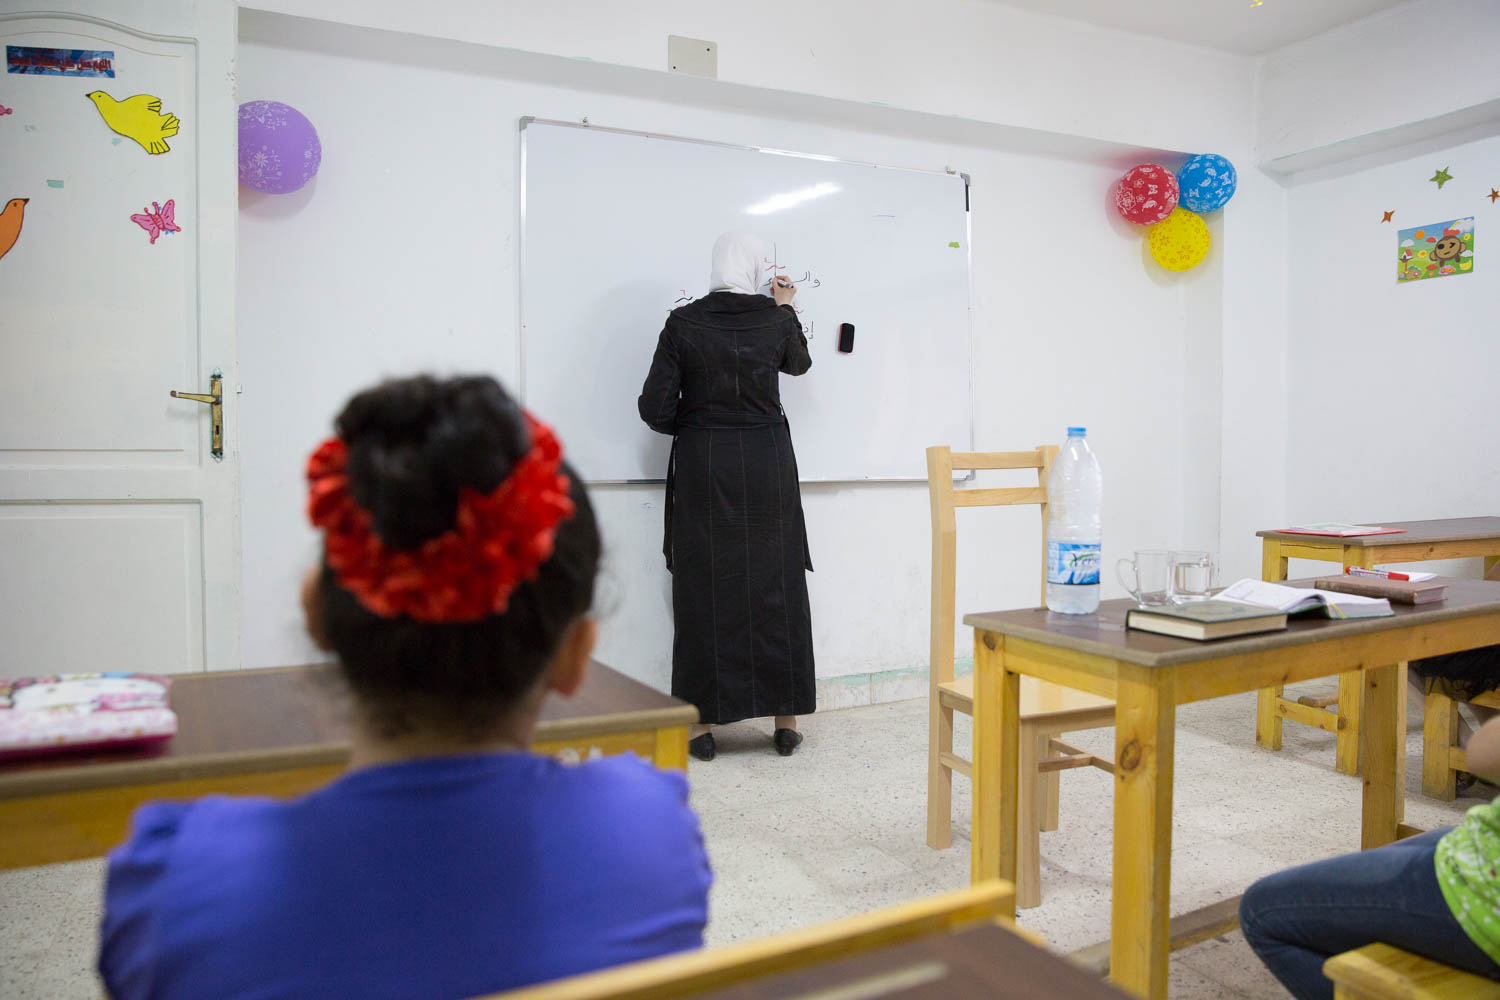 Fatma, has lived in Egypt for 2 years after fleeing her homeland of Syria. She now teaches after-school religious classes at Ansan's community center in Greater Cairo. Ansan (Human in English) is a partner organisation of Plan International Egypt.